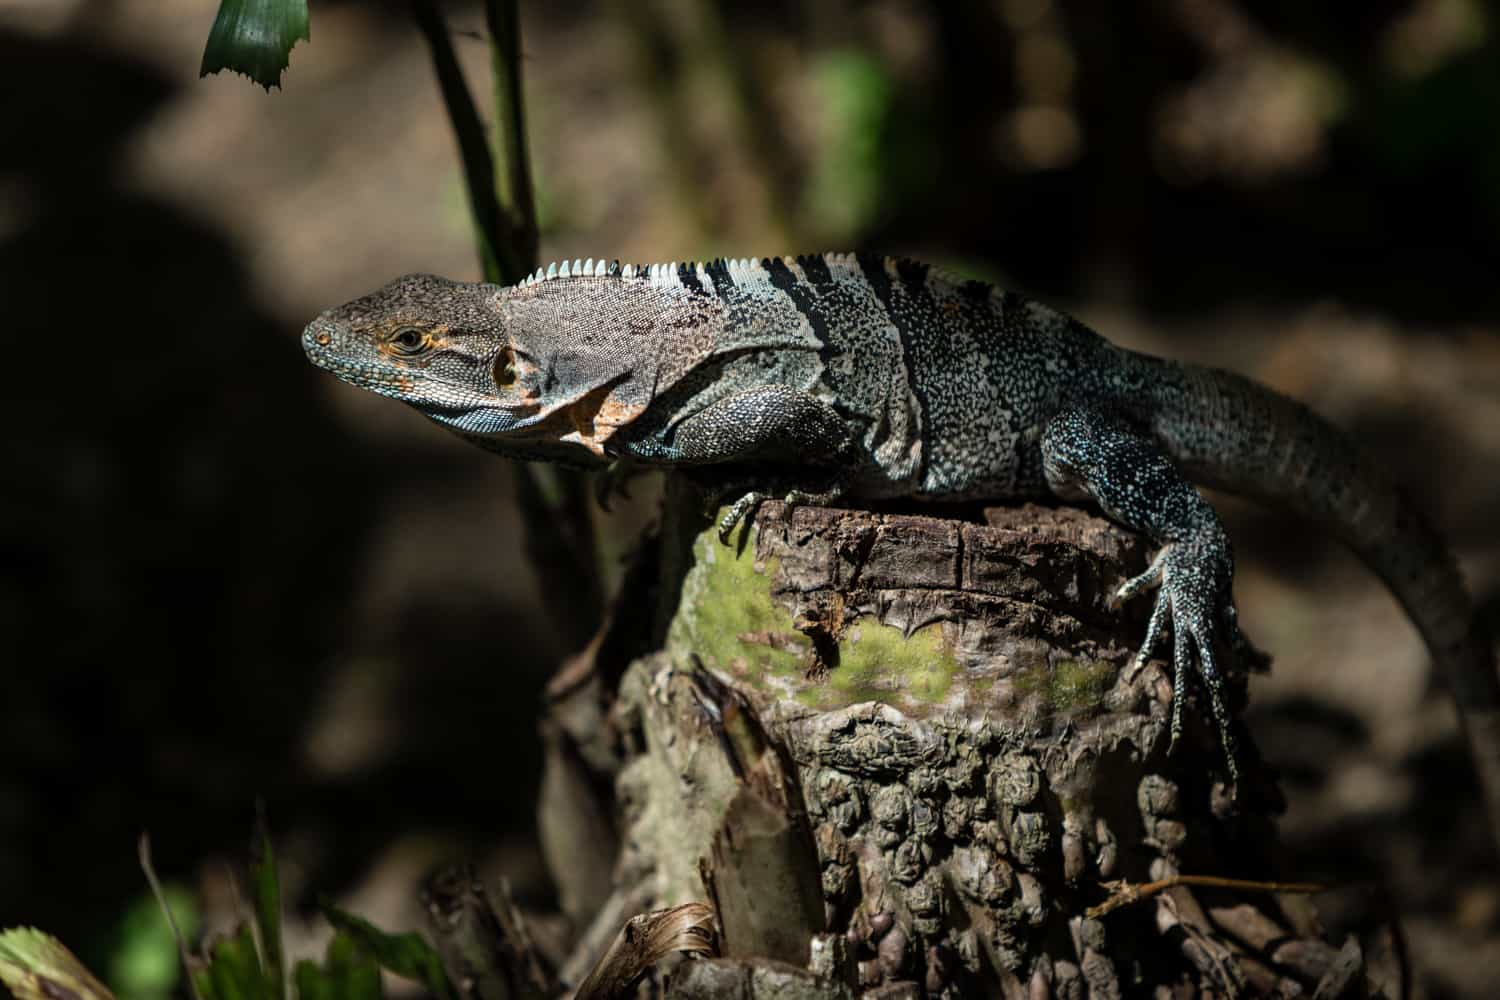 A small iguana taking in a bit of sun while in the botanical garden.